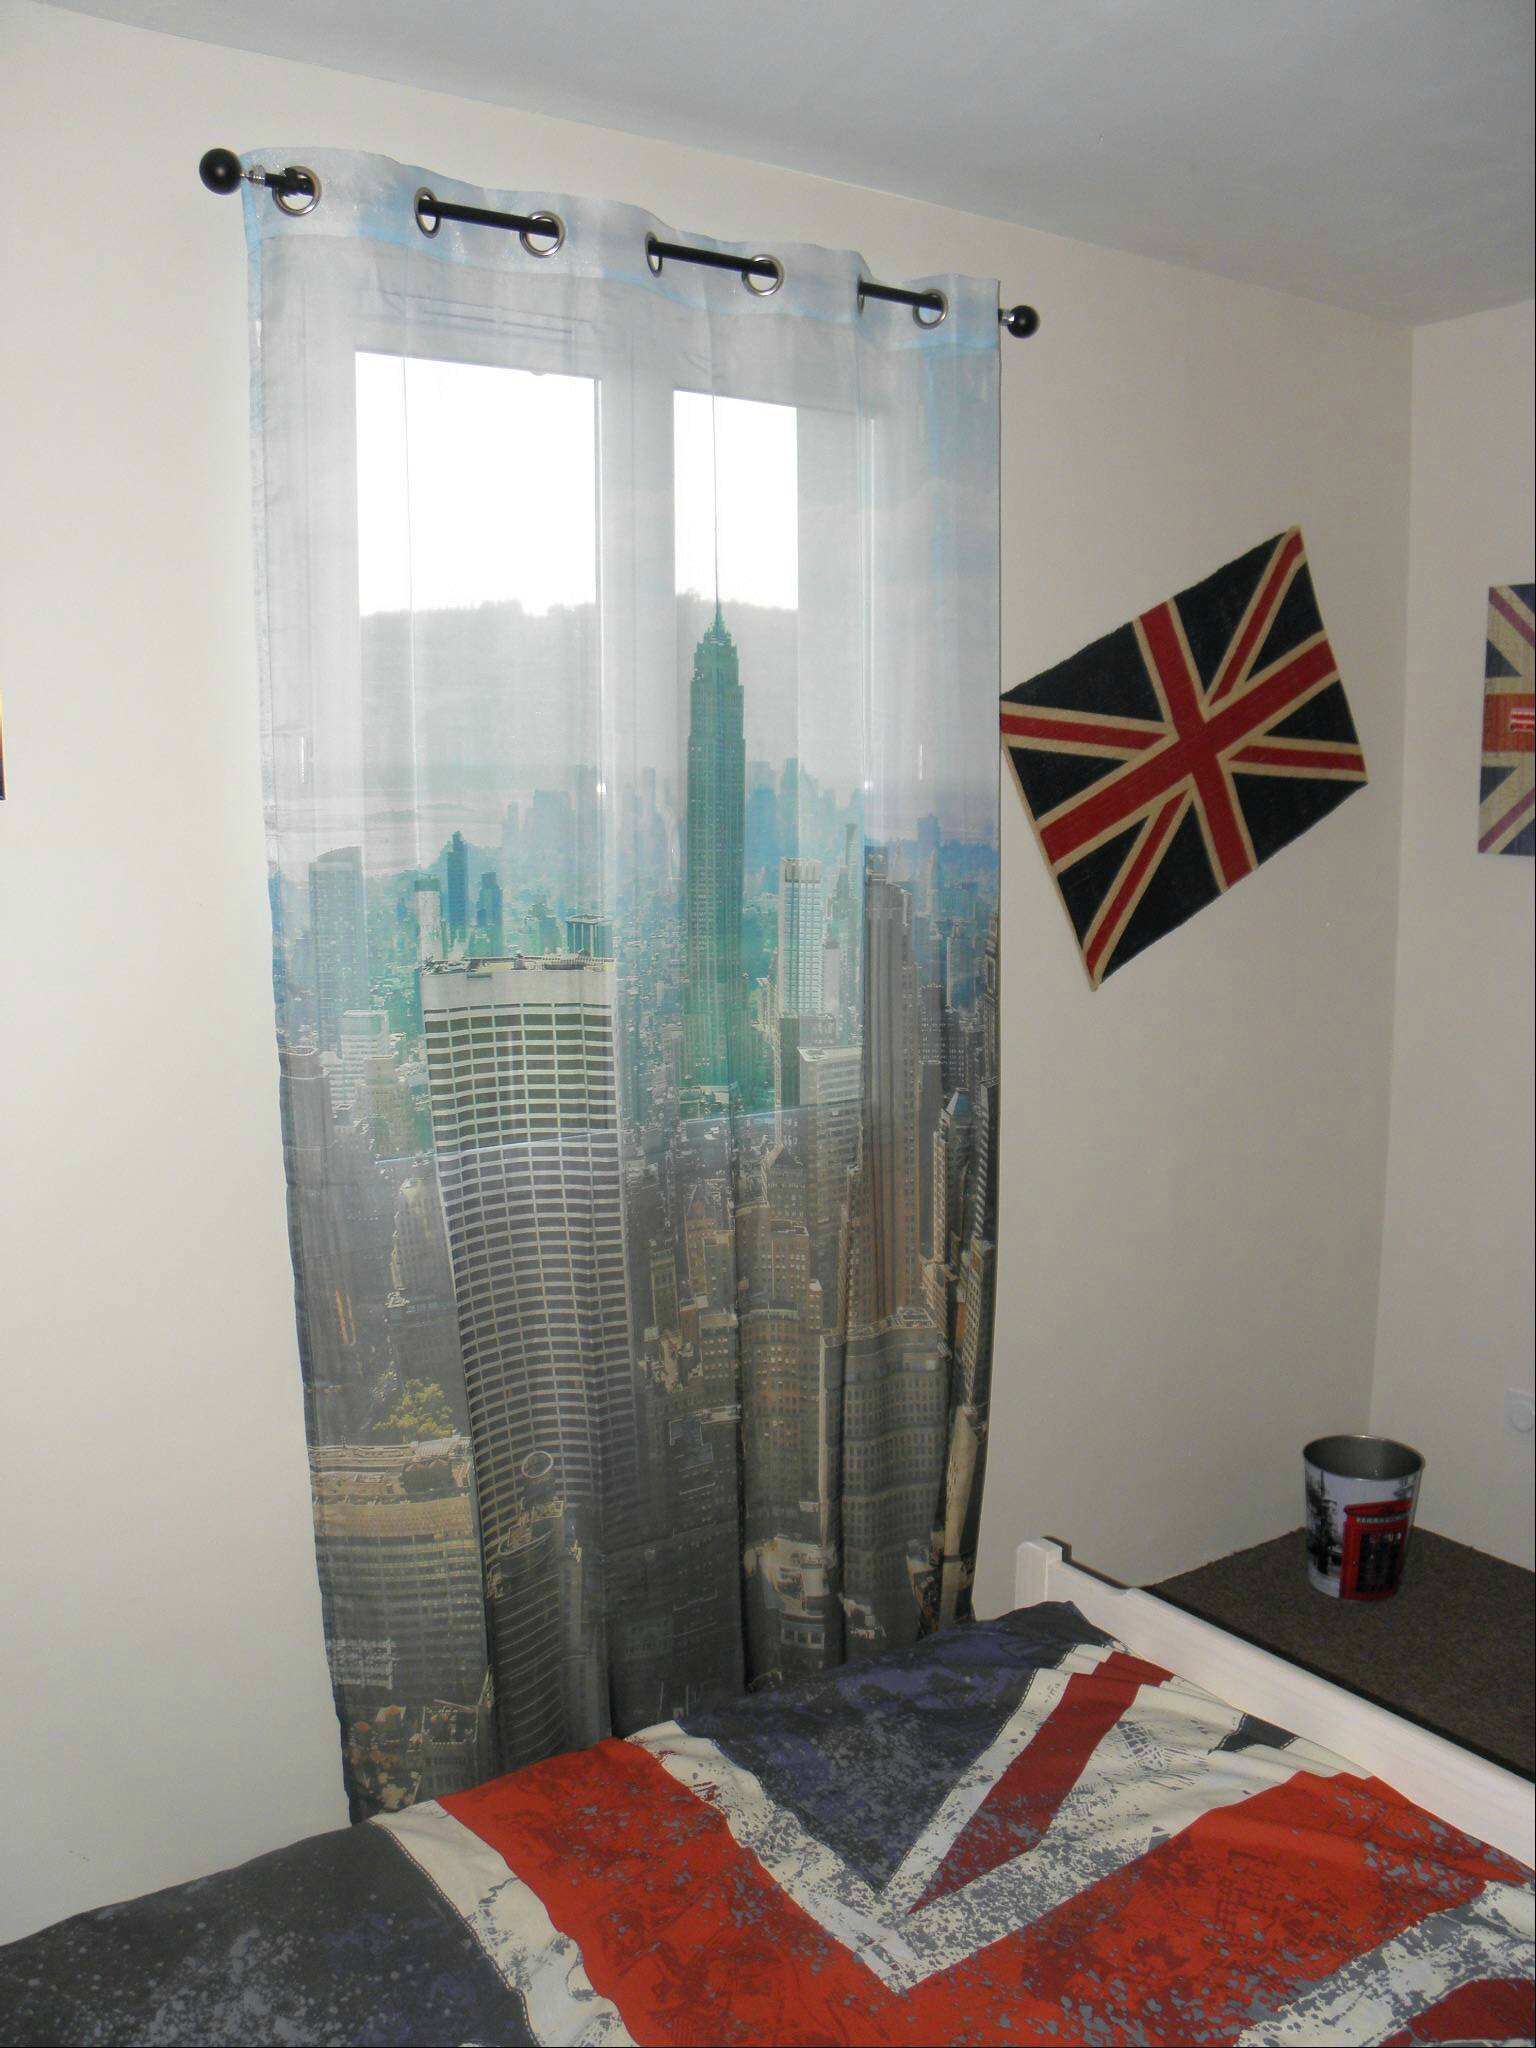 Idee deco chambre theme londres for Theme deco maison